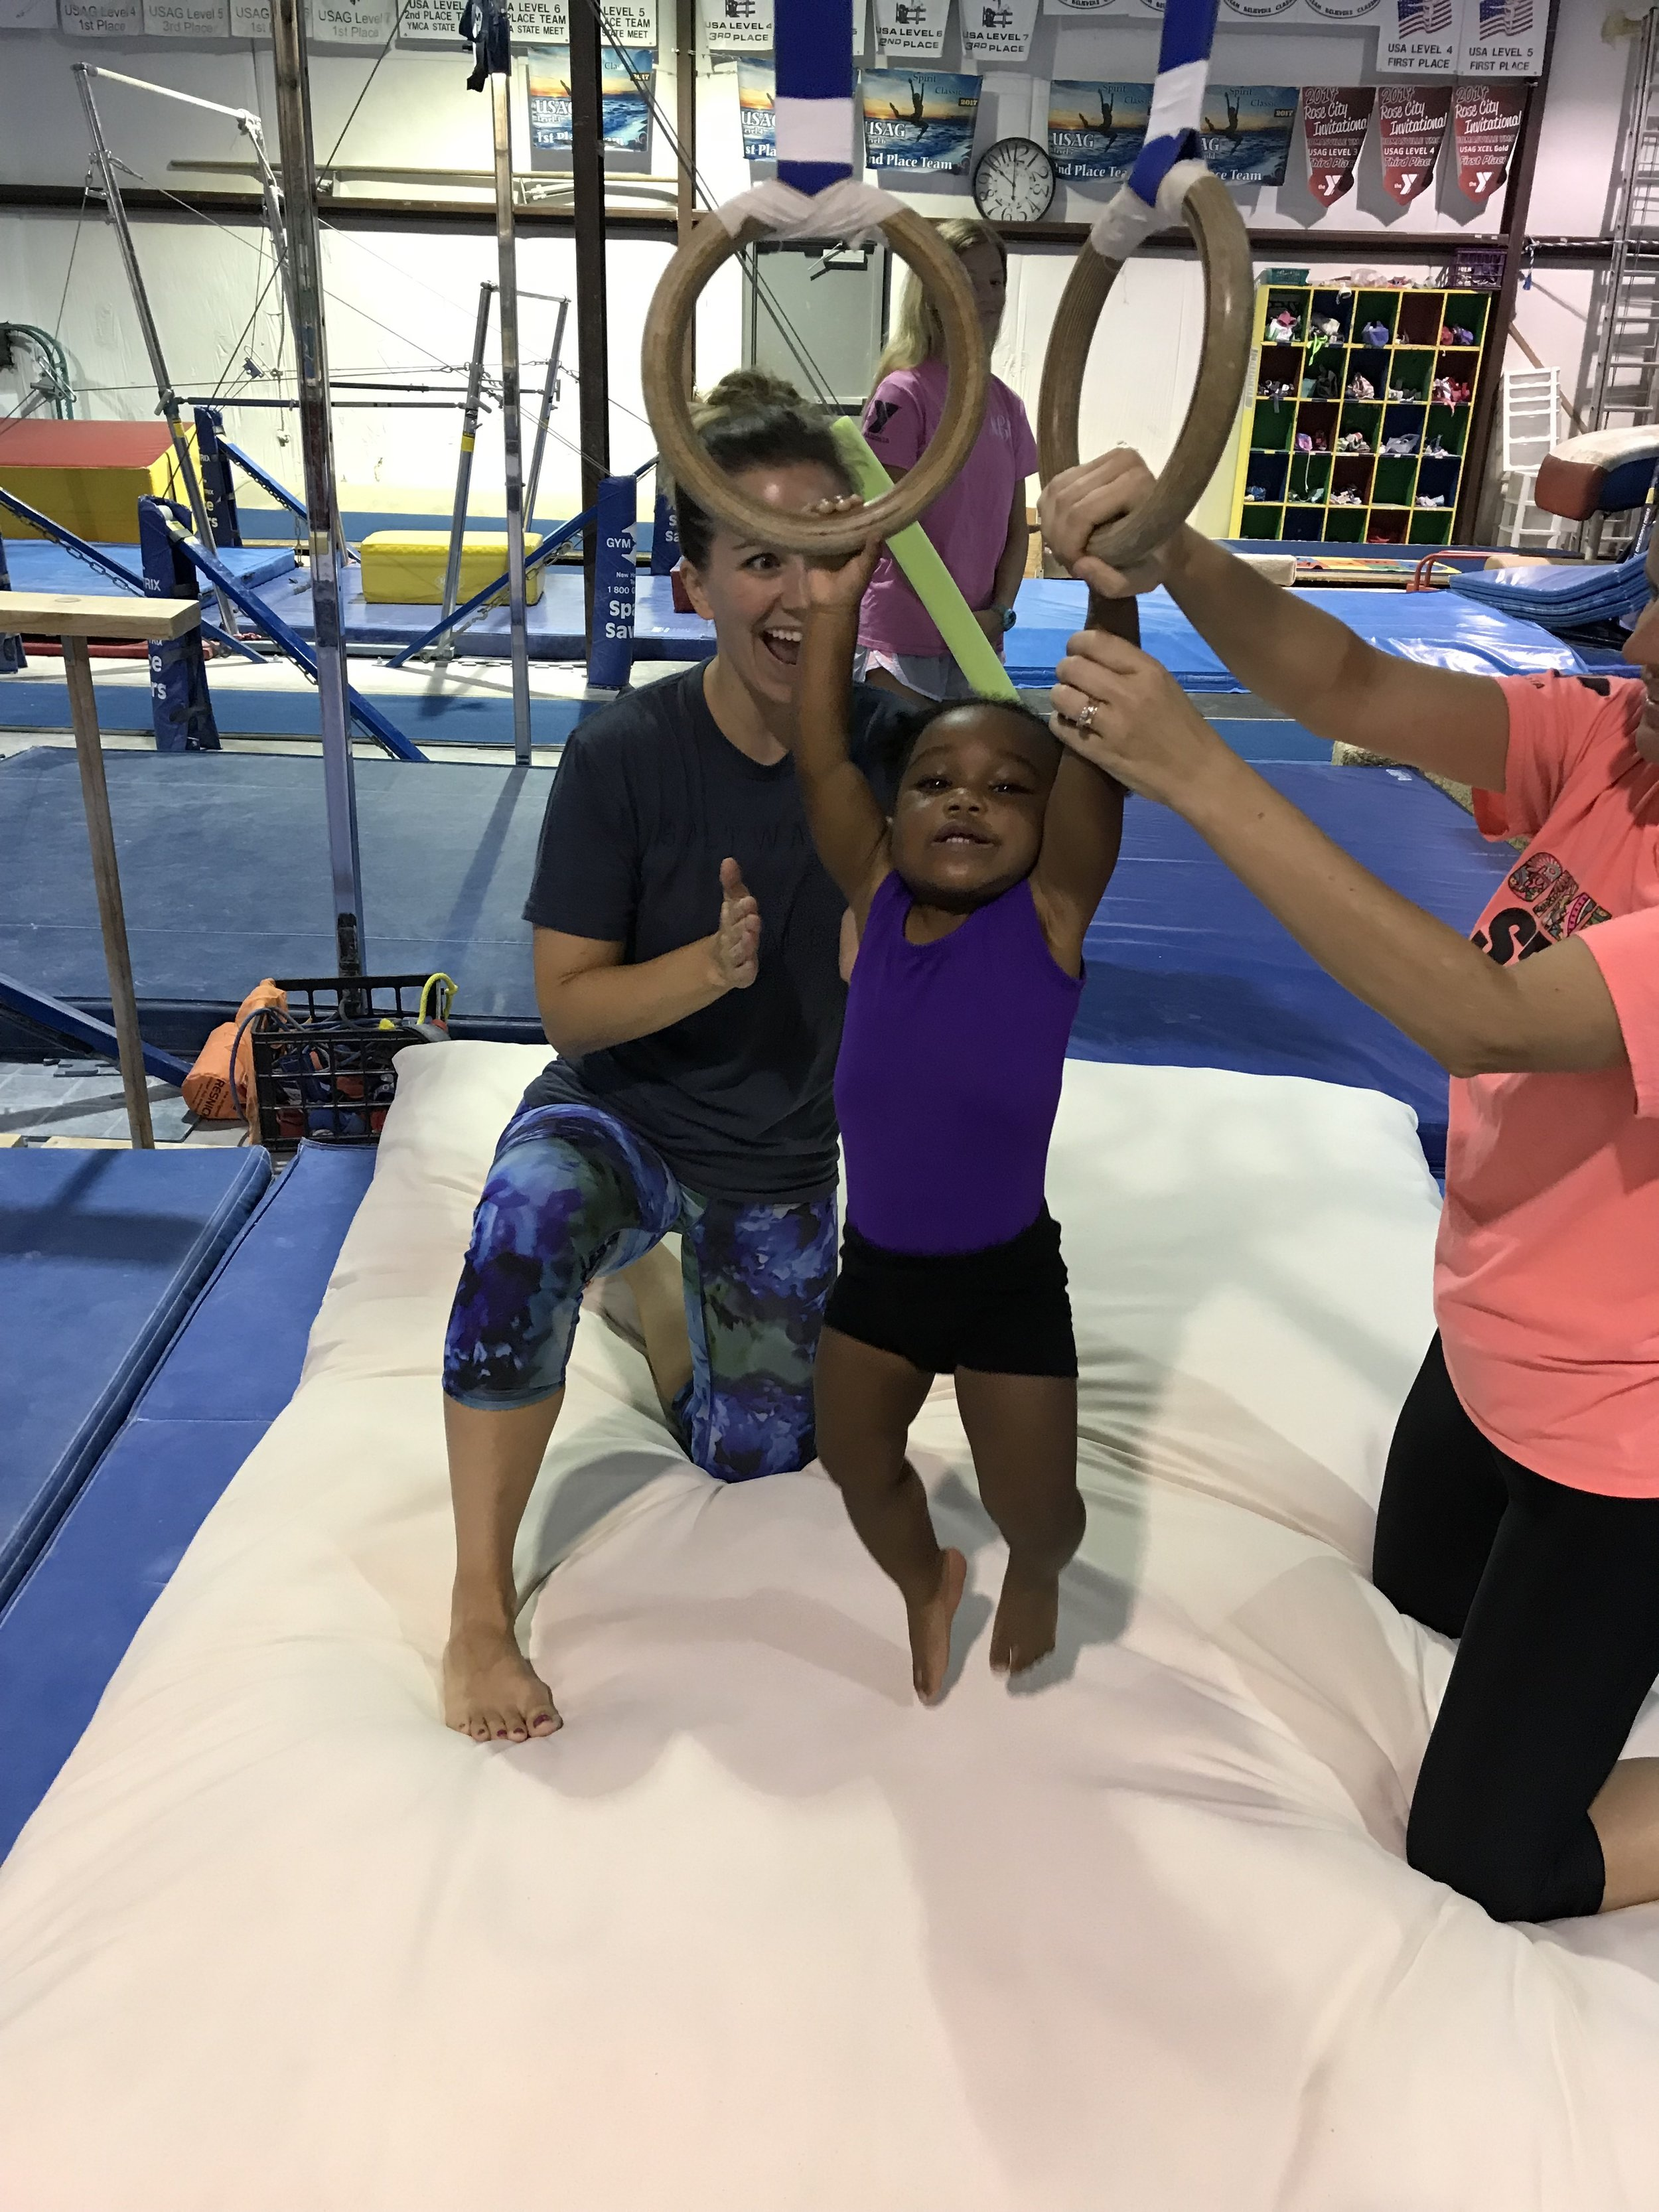 Evie loves gymnastics!  We are a pretty active bunch